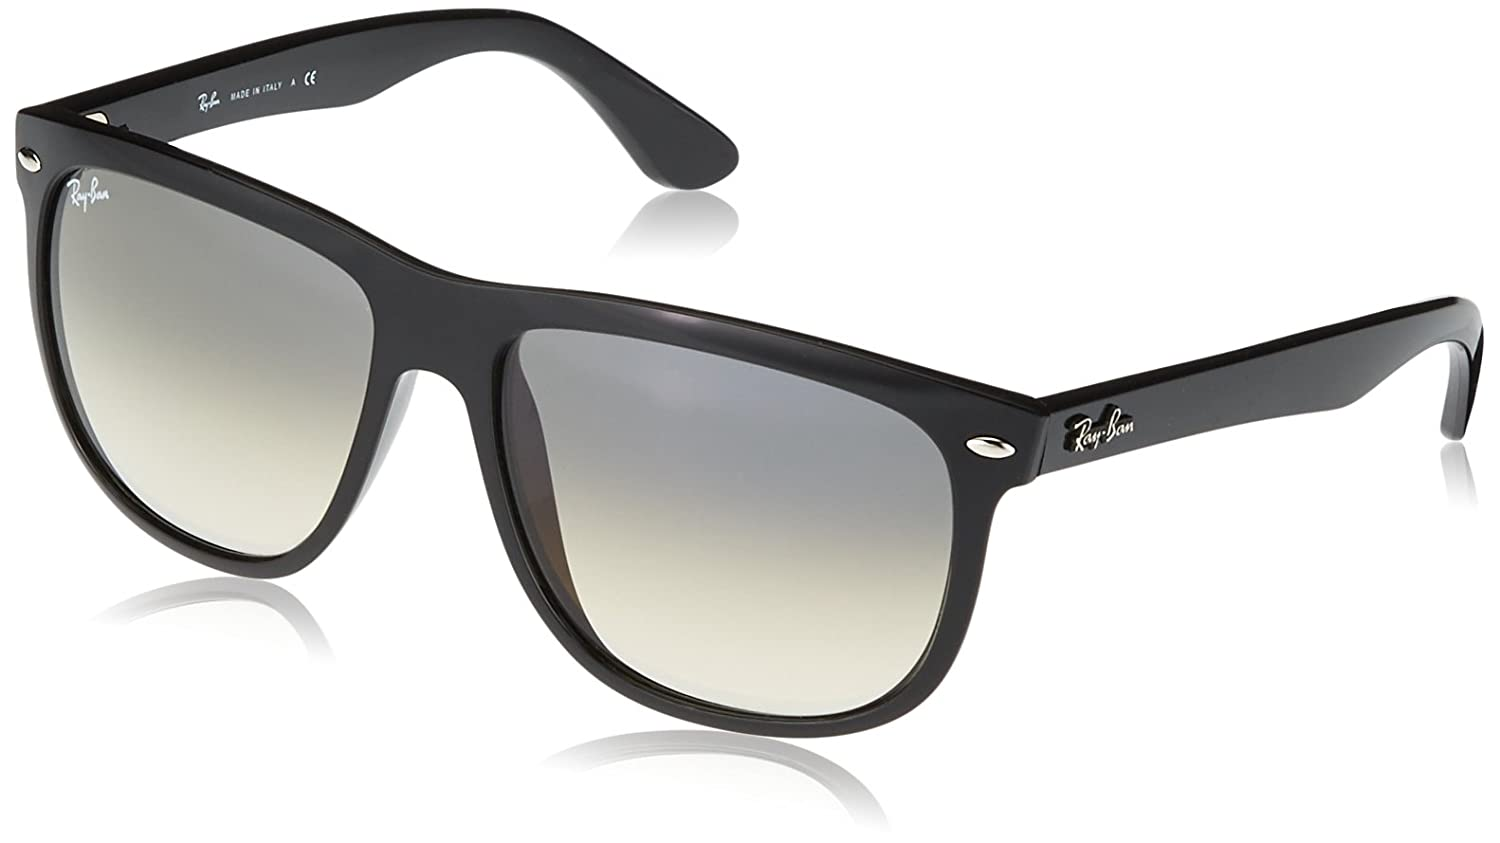 Ray-Ban Sonnenbrille (RB 4147)